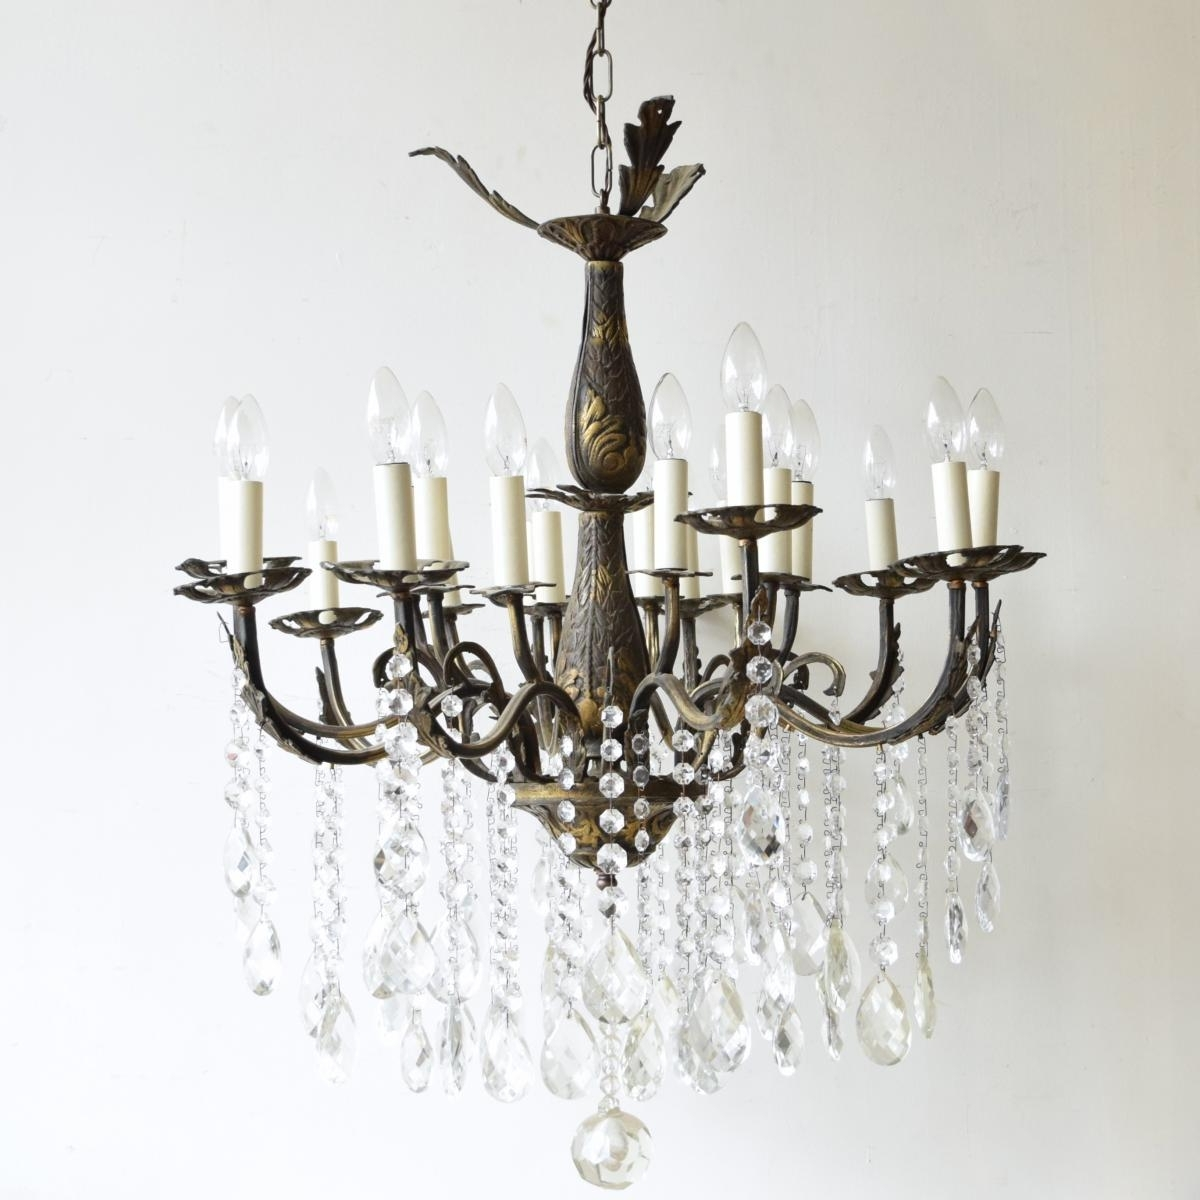 Large Vintage French 16 Light Brass Chandelier For Sale At Pamono In Preferred Vintage Brass Chandeliers (View 3 of 20)